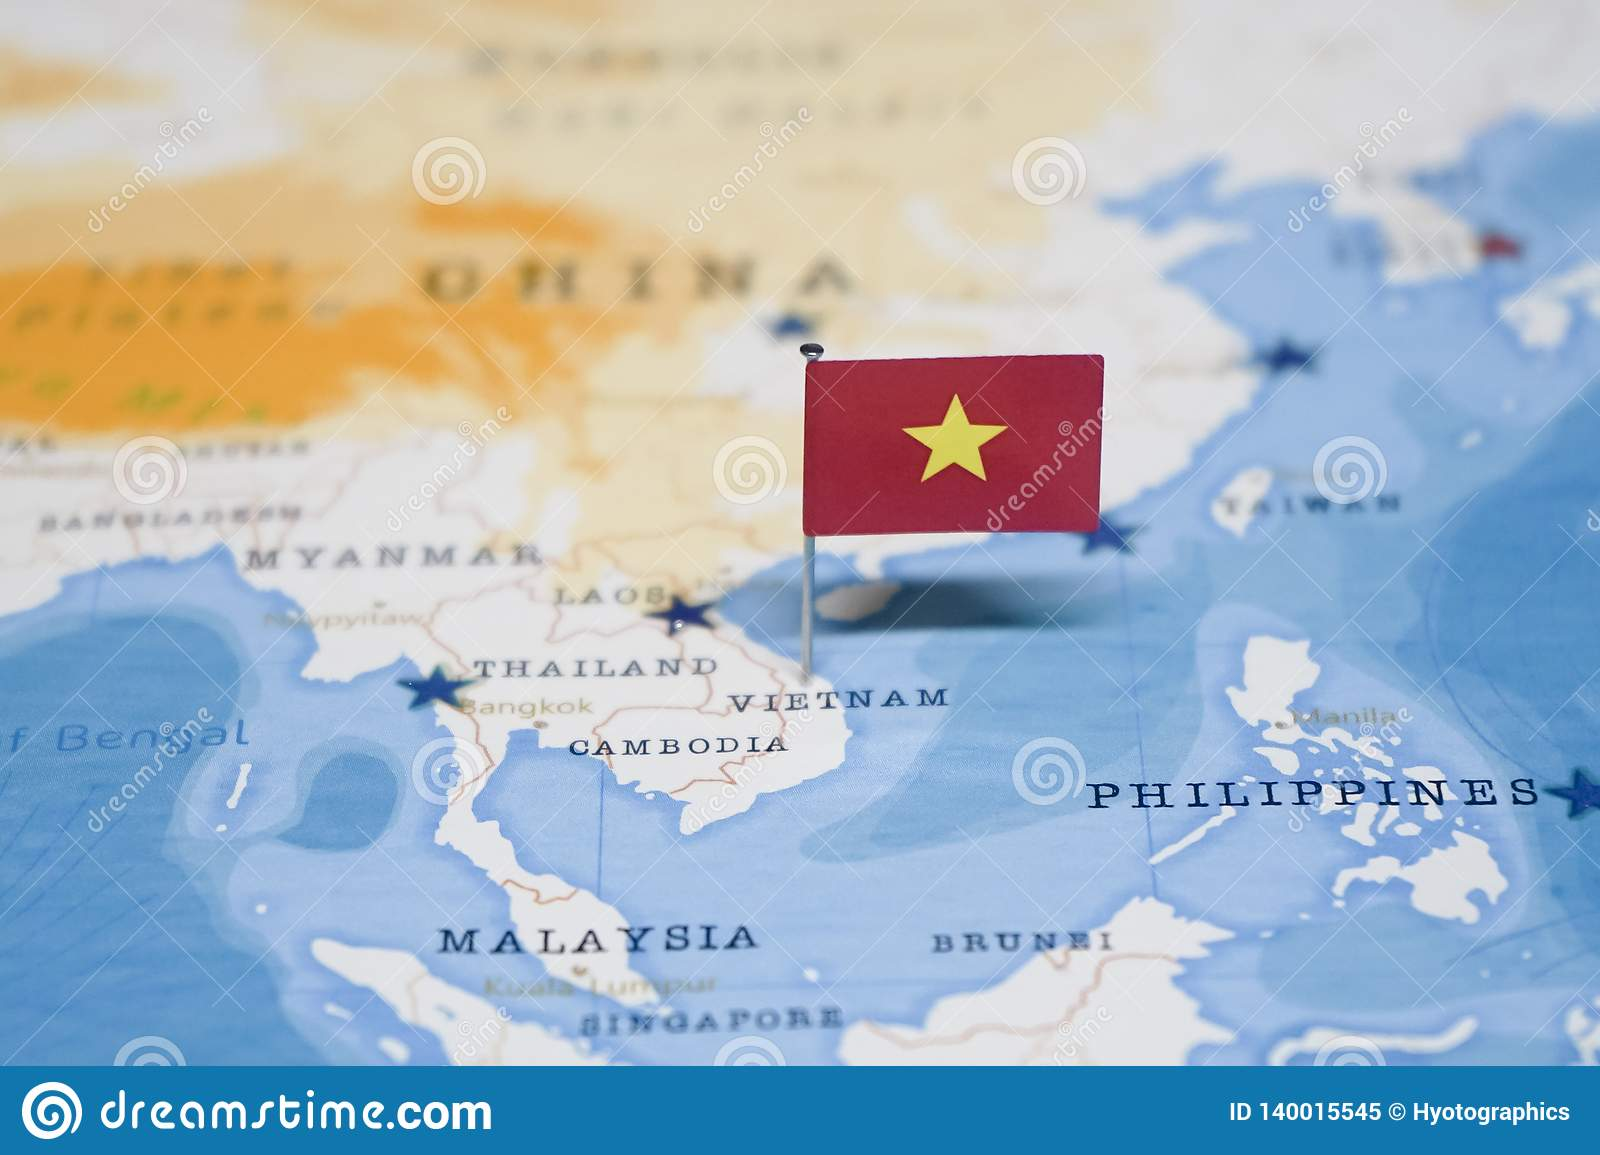 The Flag Of Vietnam In The World Map Stock Image - Image of ...